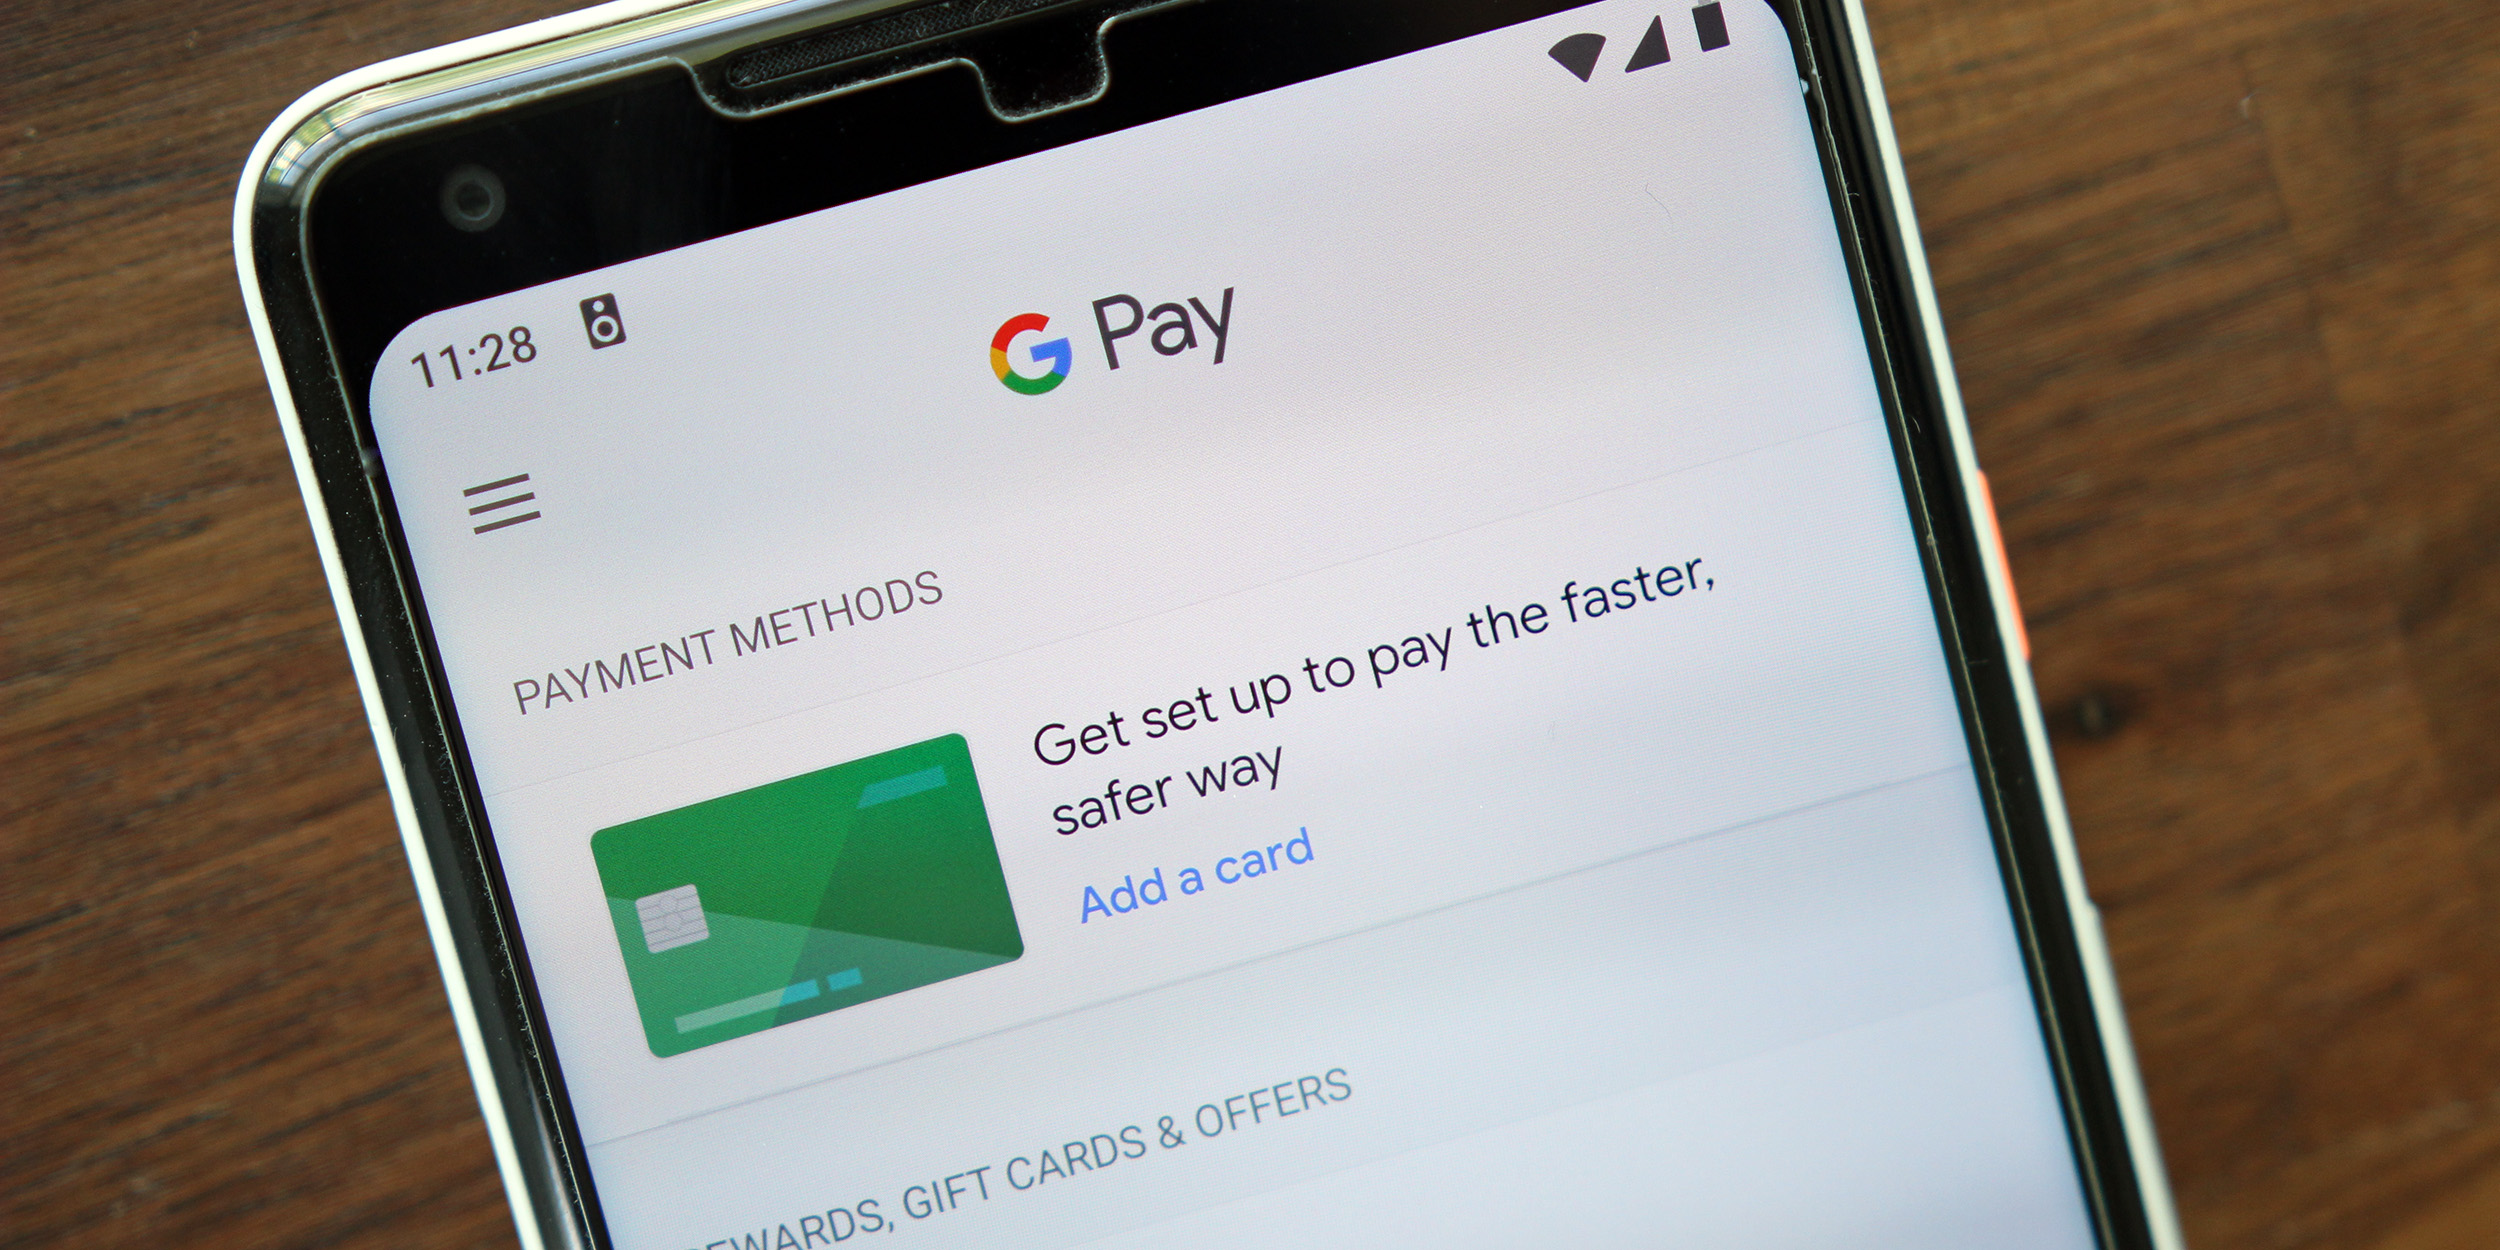 Google Pay adds support for movie tickets, airline passes, and more